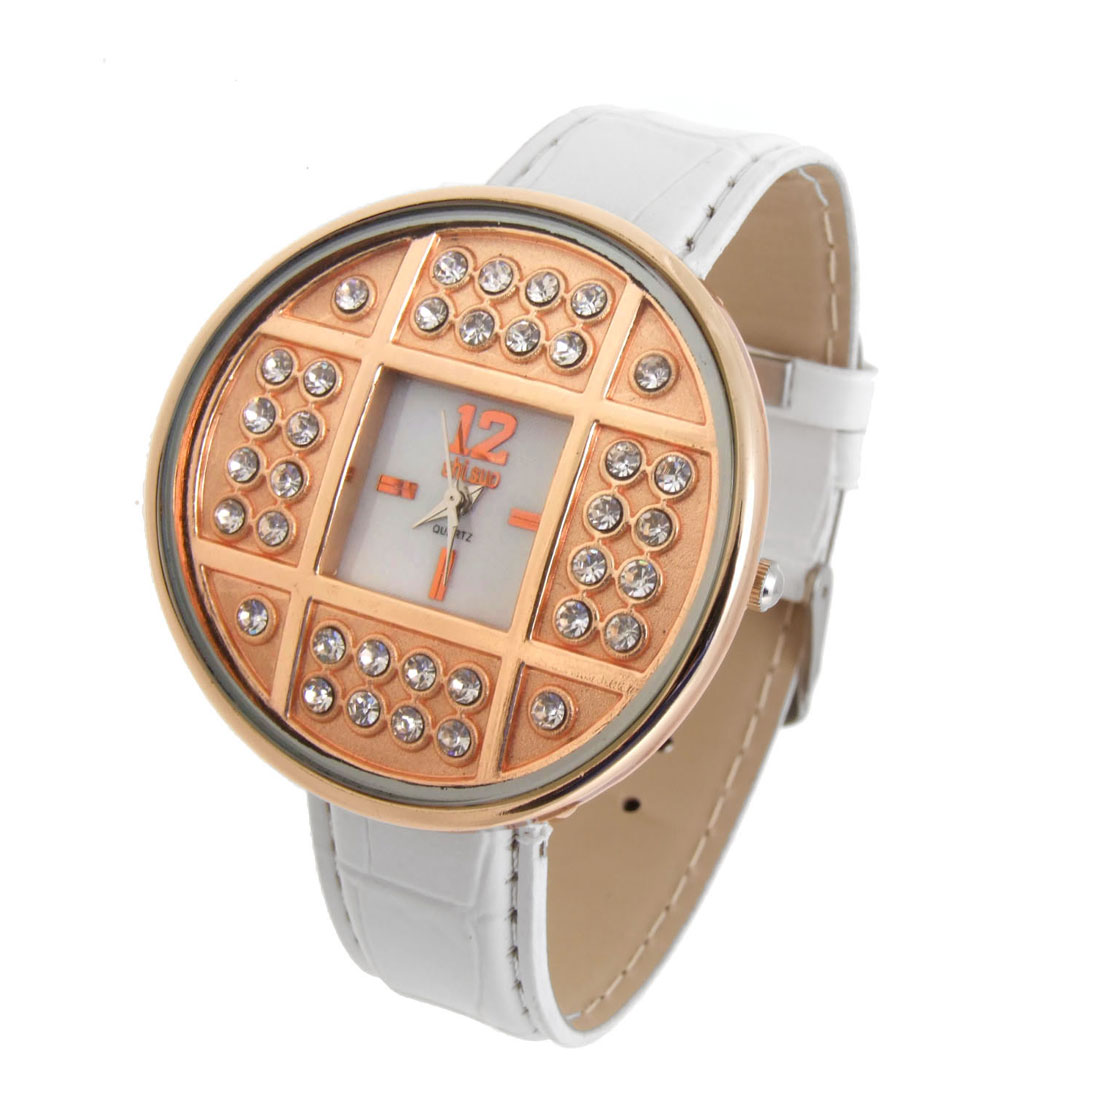 Fashion Jewelry GOLDENen Copper Cash Wrist Watches White